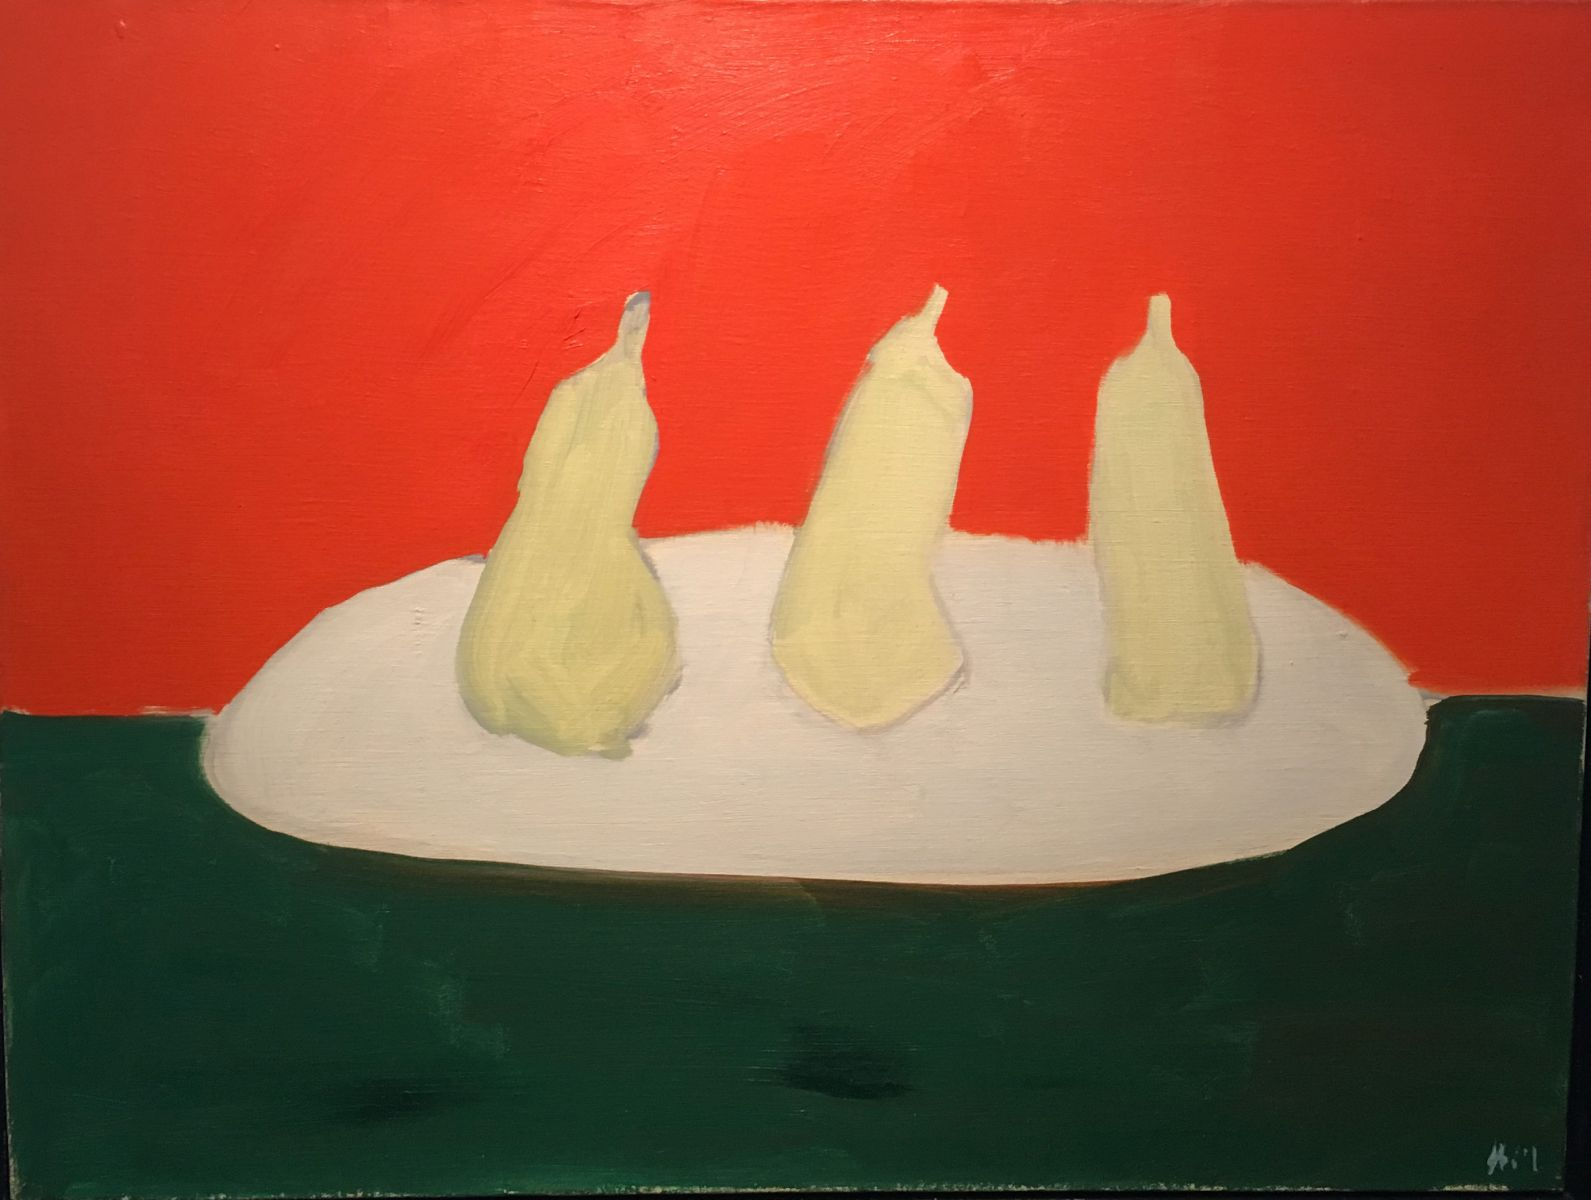 Nicolas De Staël - Nature morte, poires, fond vert et orange